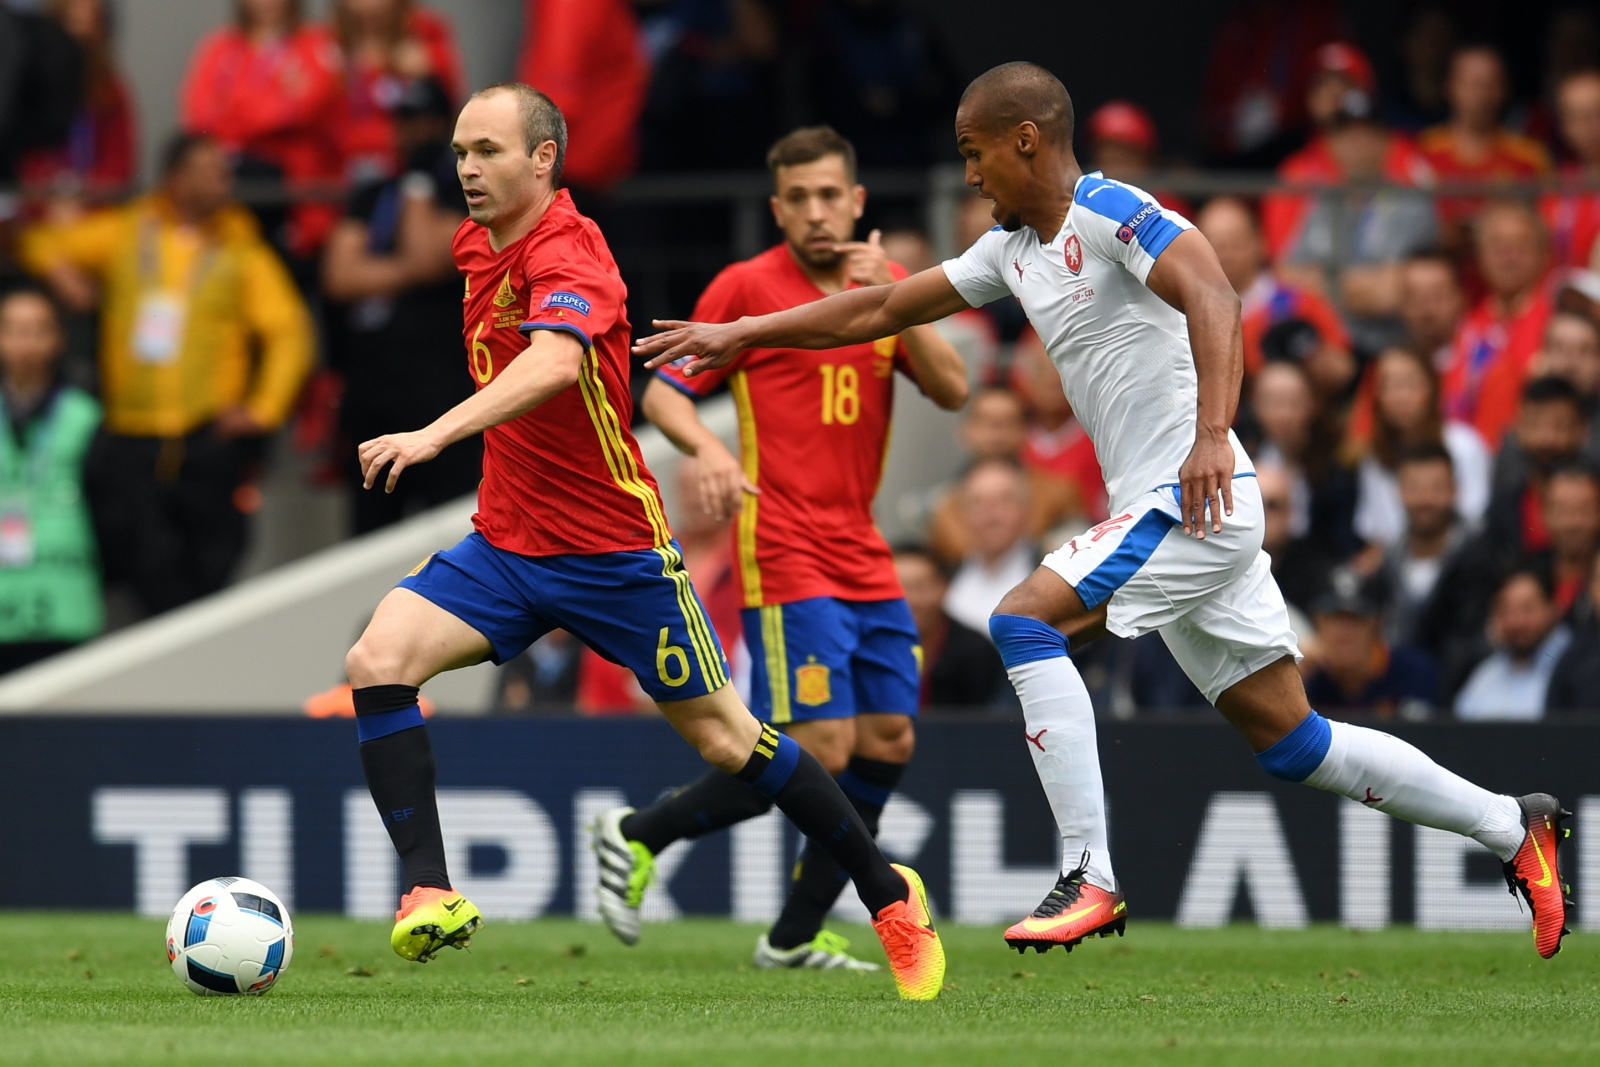 Iniesta was central to Spain's best moves